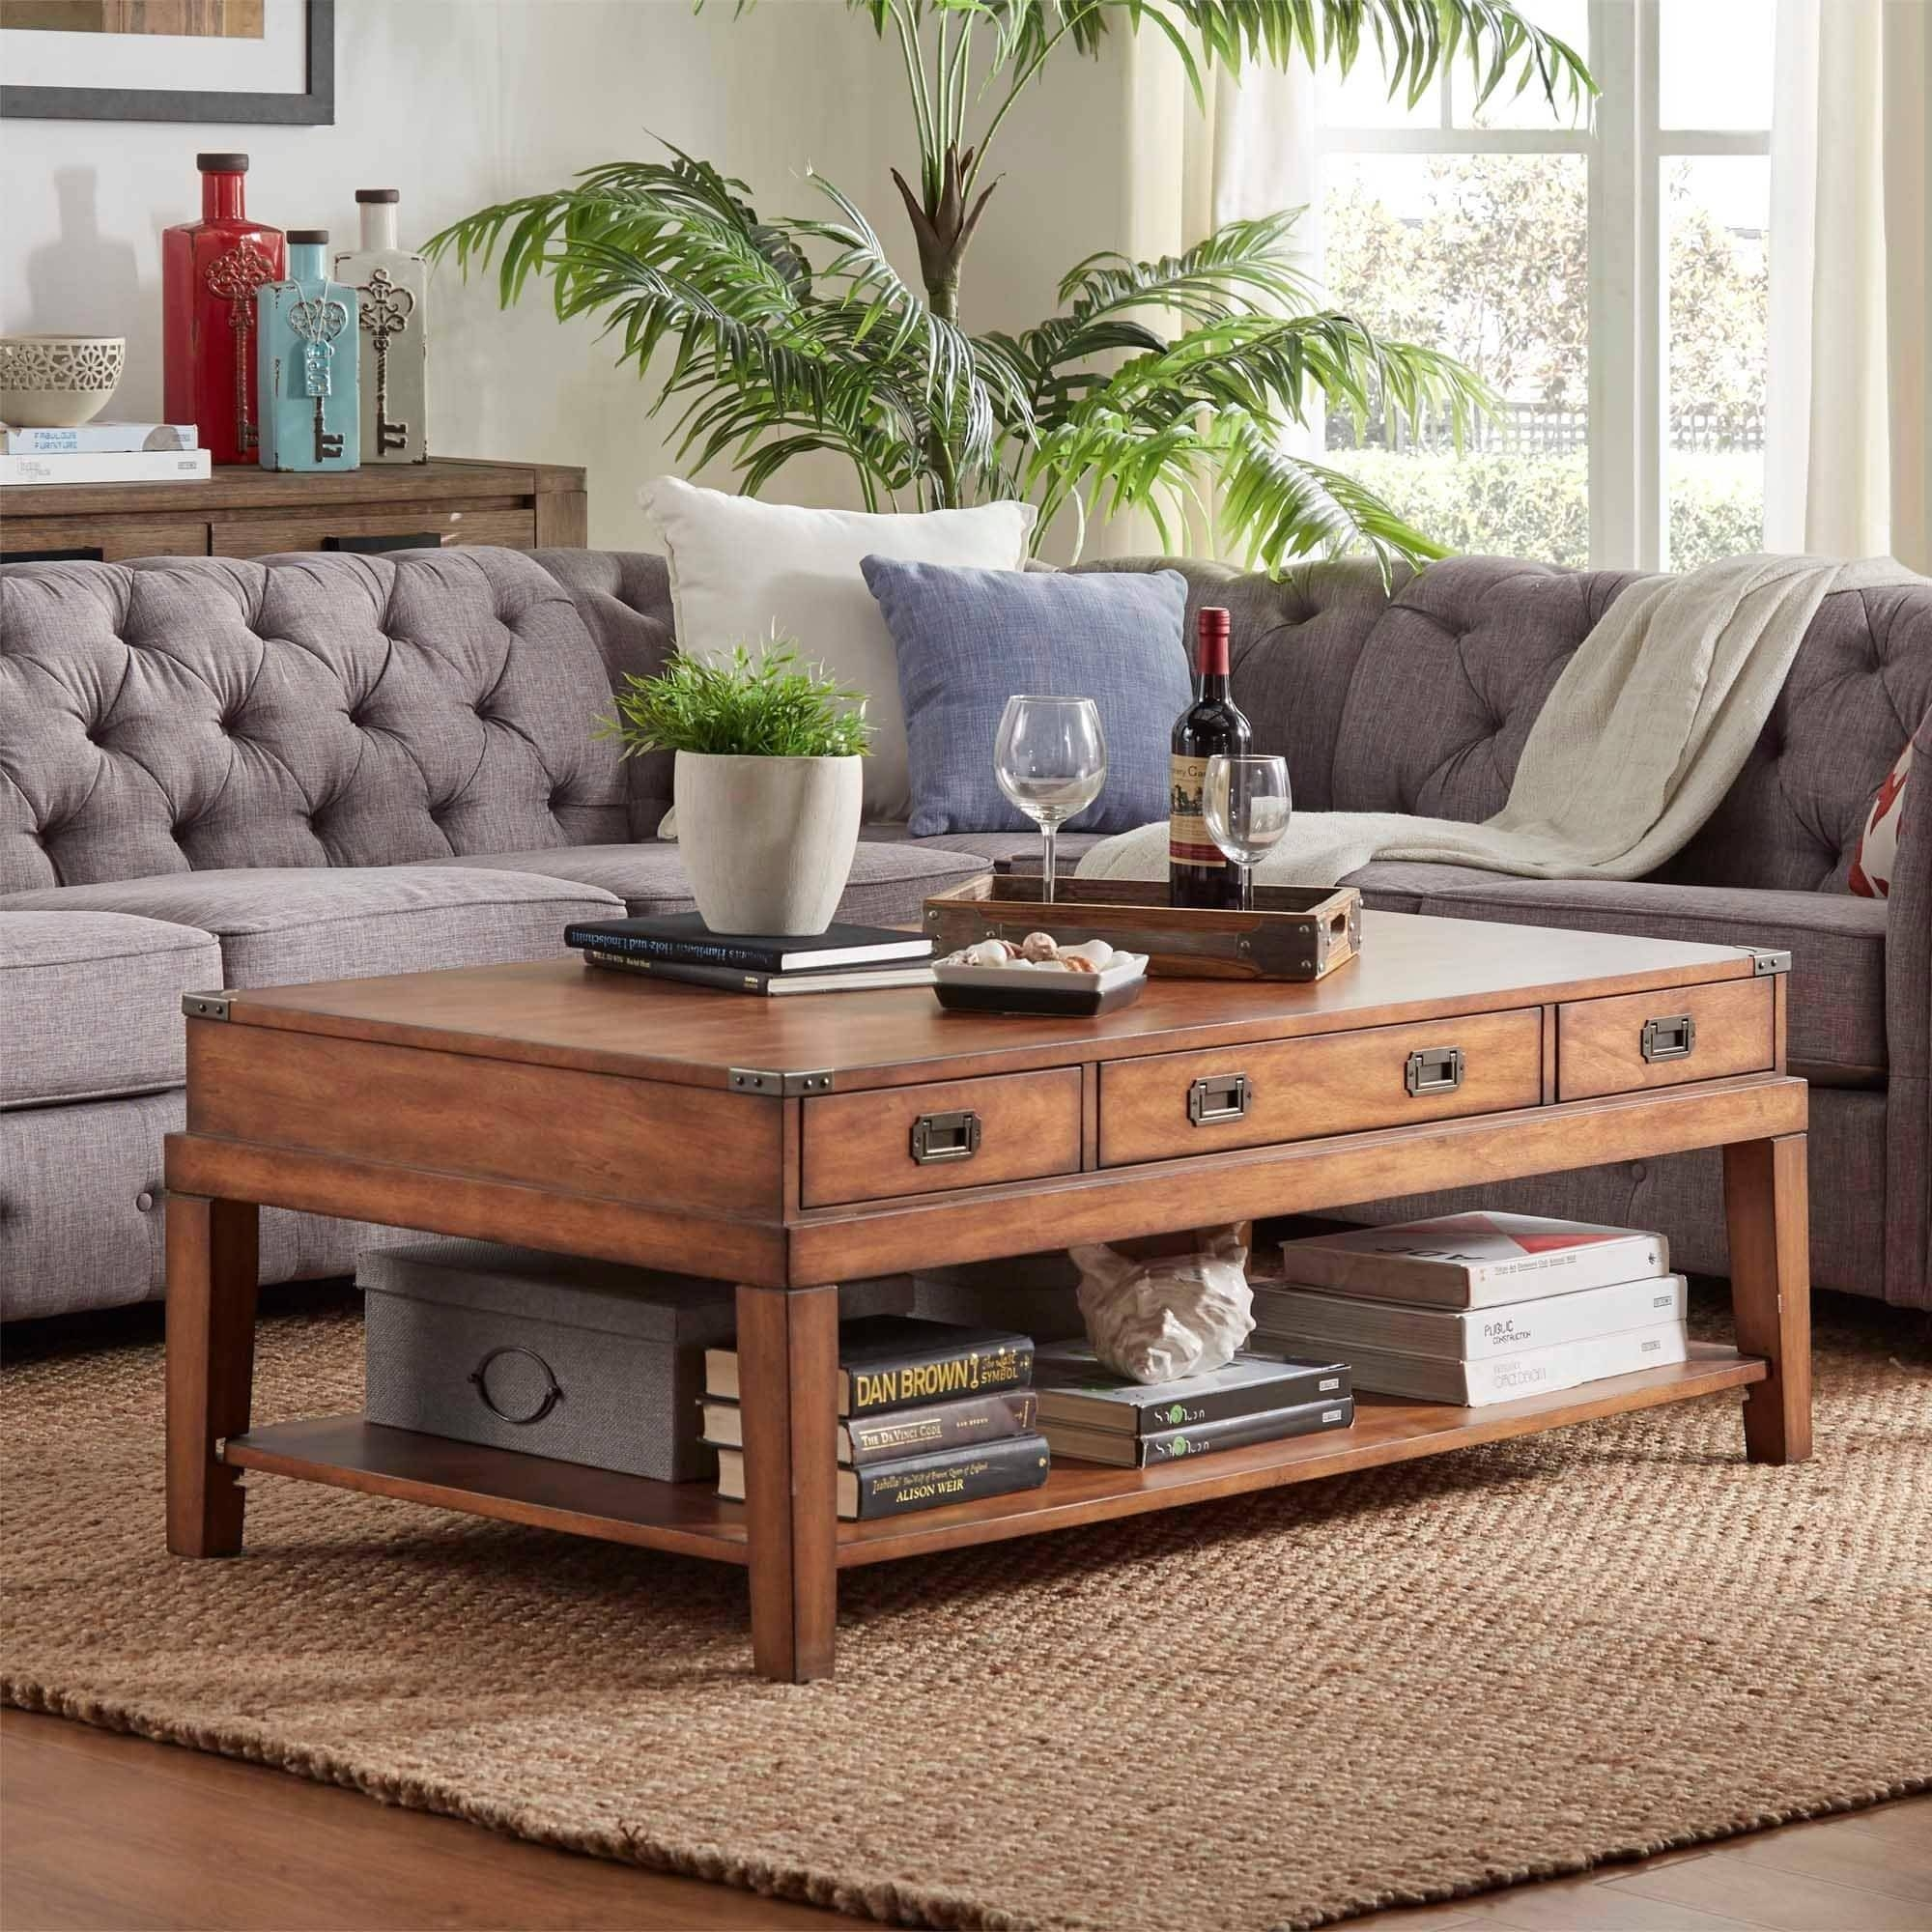 Lonny Wood Storage Accent Campaign Coffee Tableinspire Q throughout Campaign Coffee Tables (Image 20 of 30)